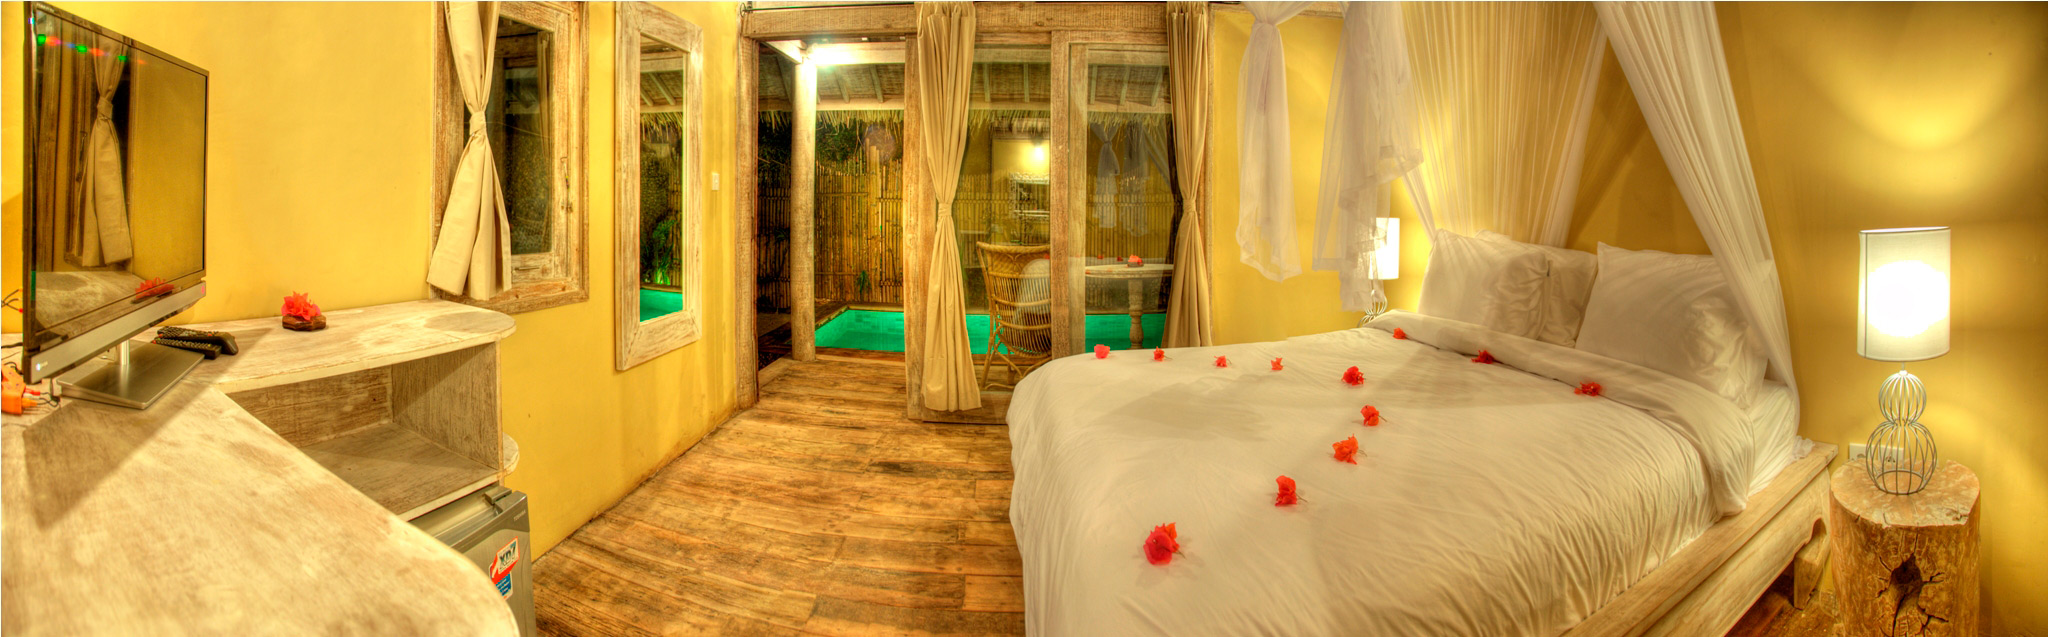 Bedroom by night in gili - Villas Ottalia